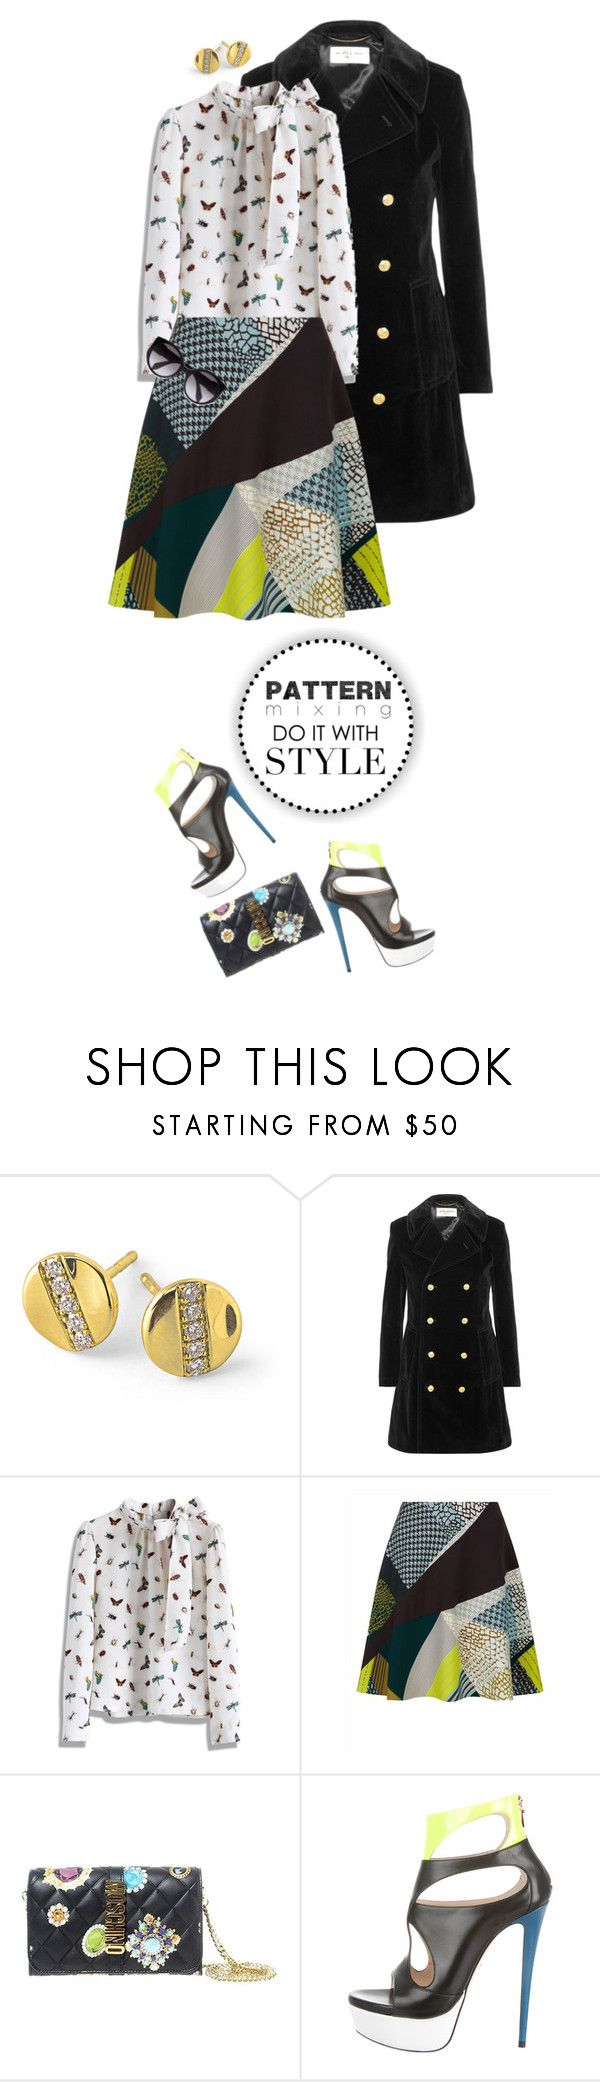 """Head-to-Toe Pattern Mixing"" by shortyluv718 ❤ liked on Polyvore featuring Ippolita, Yves Saint Laurent, Chicwish, Jaeger, Moschino, Ruthie Davis, Alexander McQueen and patternmixing"